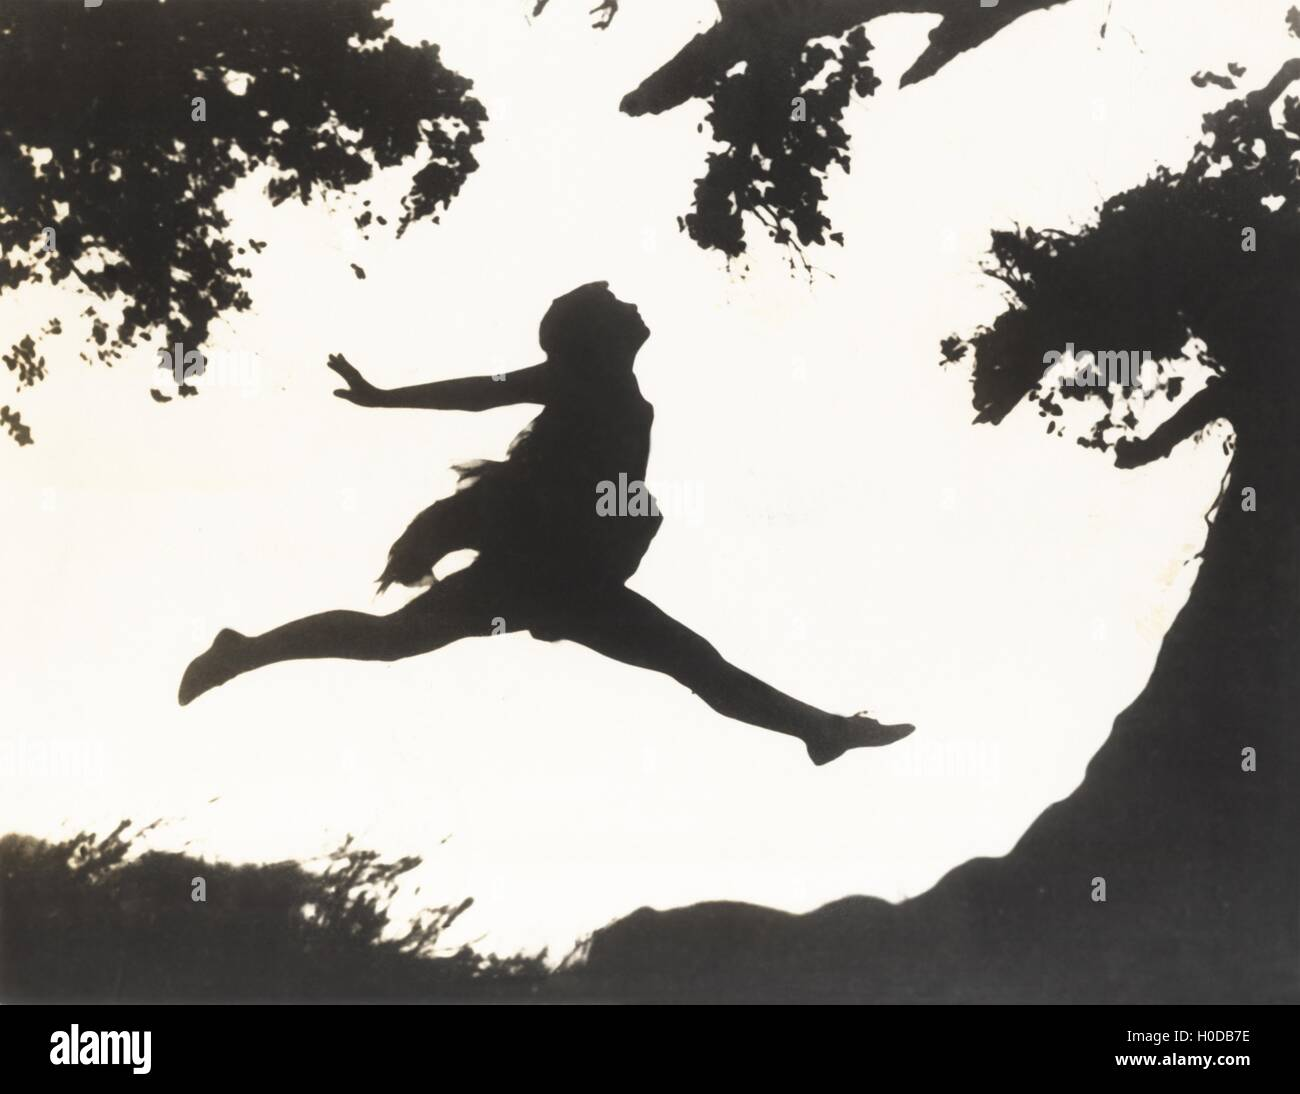 Silhouette of a woman in mid-air jumping between two trees - Stock Image